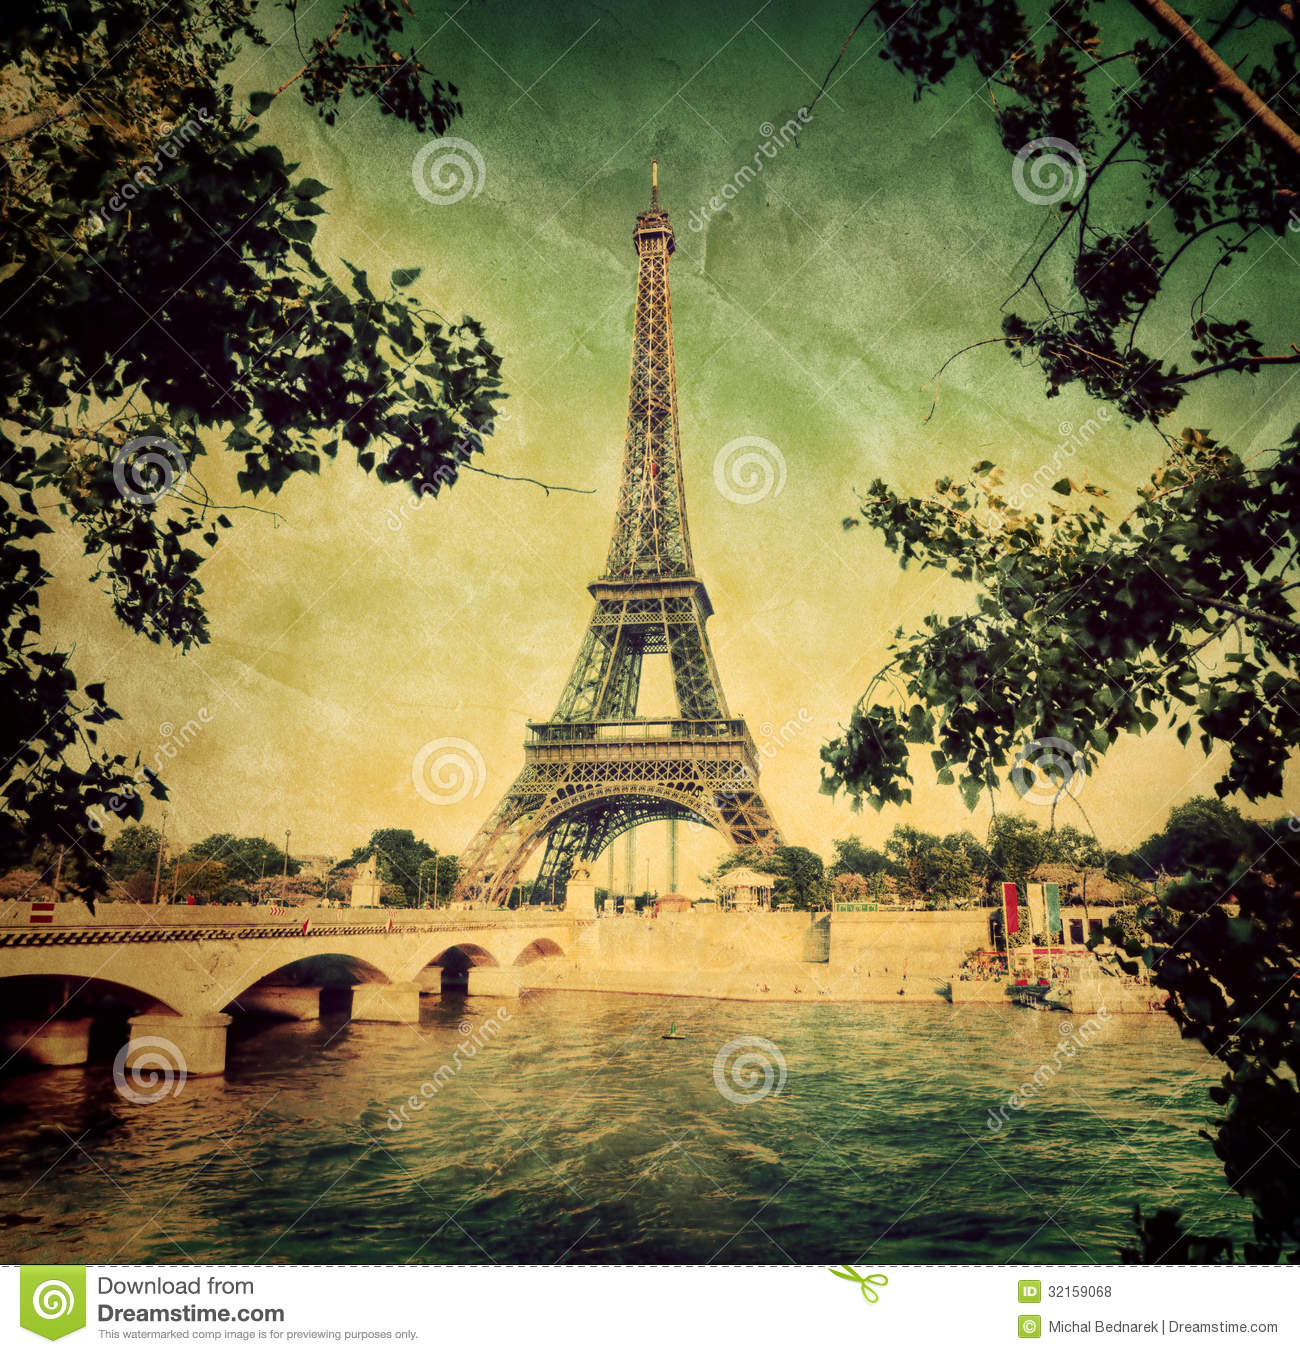 Eiffel tower and seine river in paris france vintage for Imagenes retro vintage